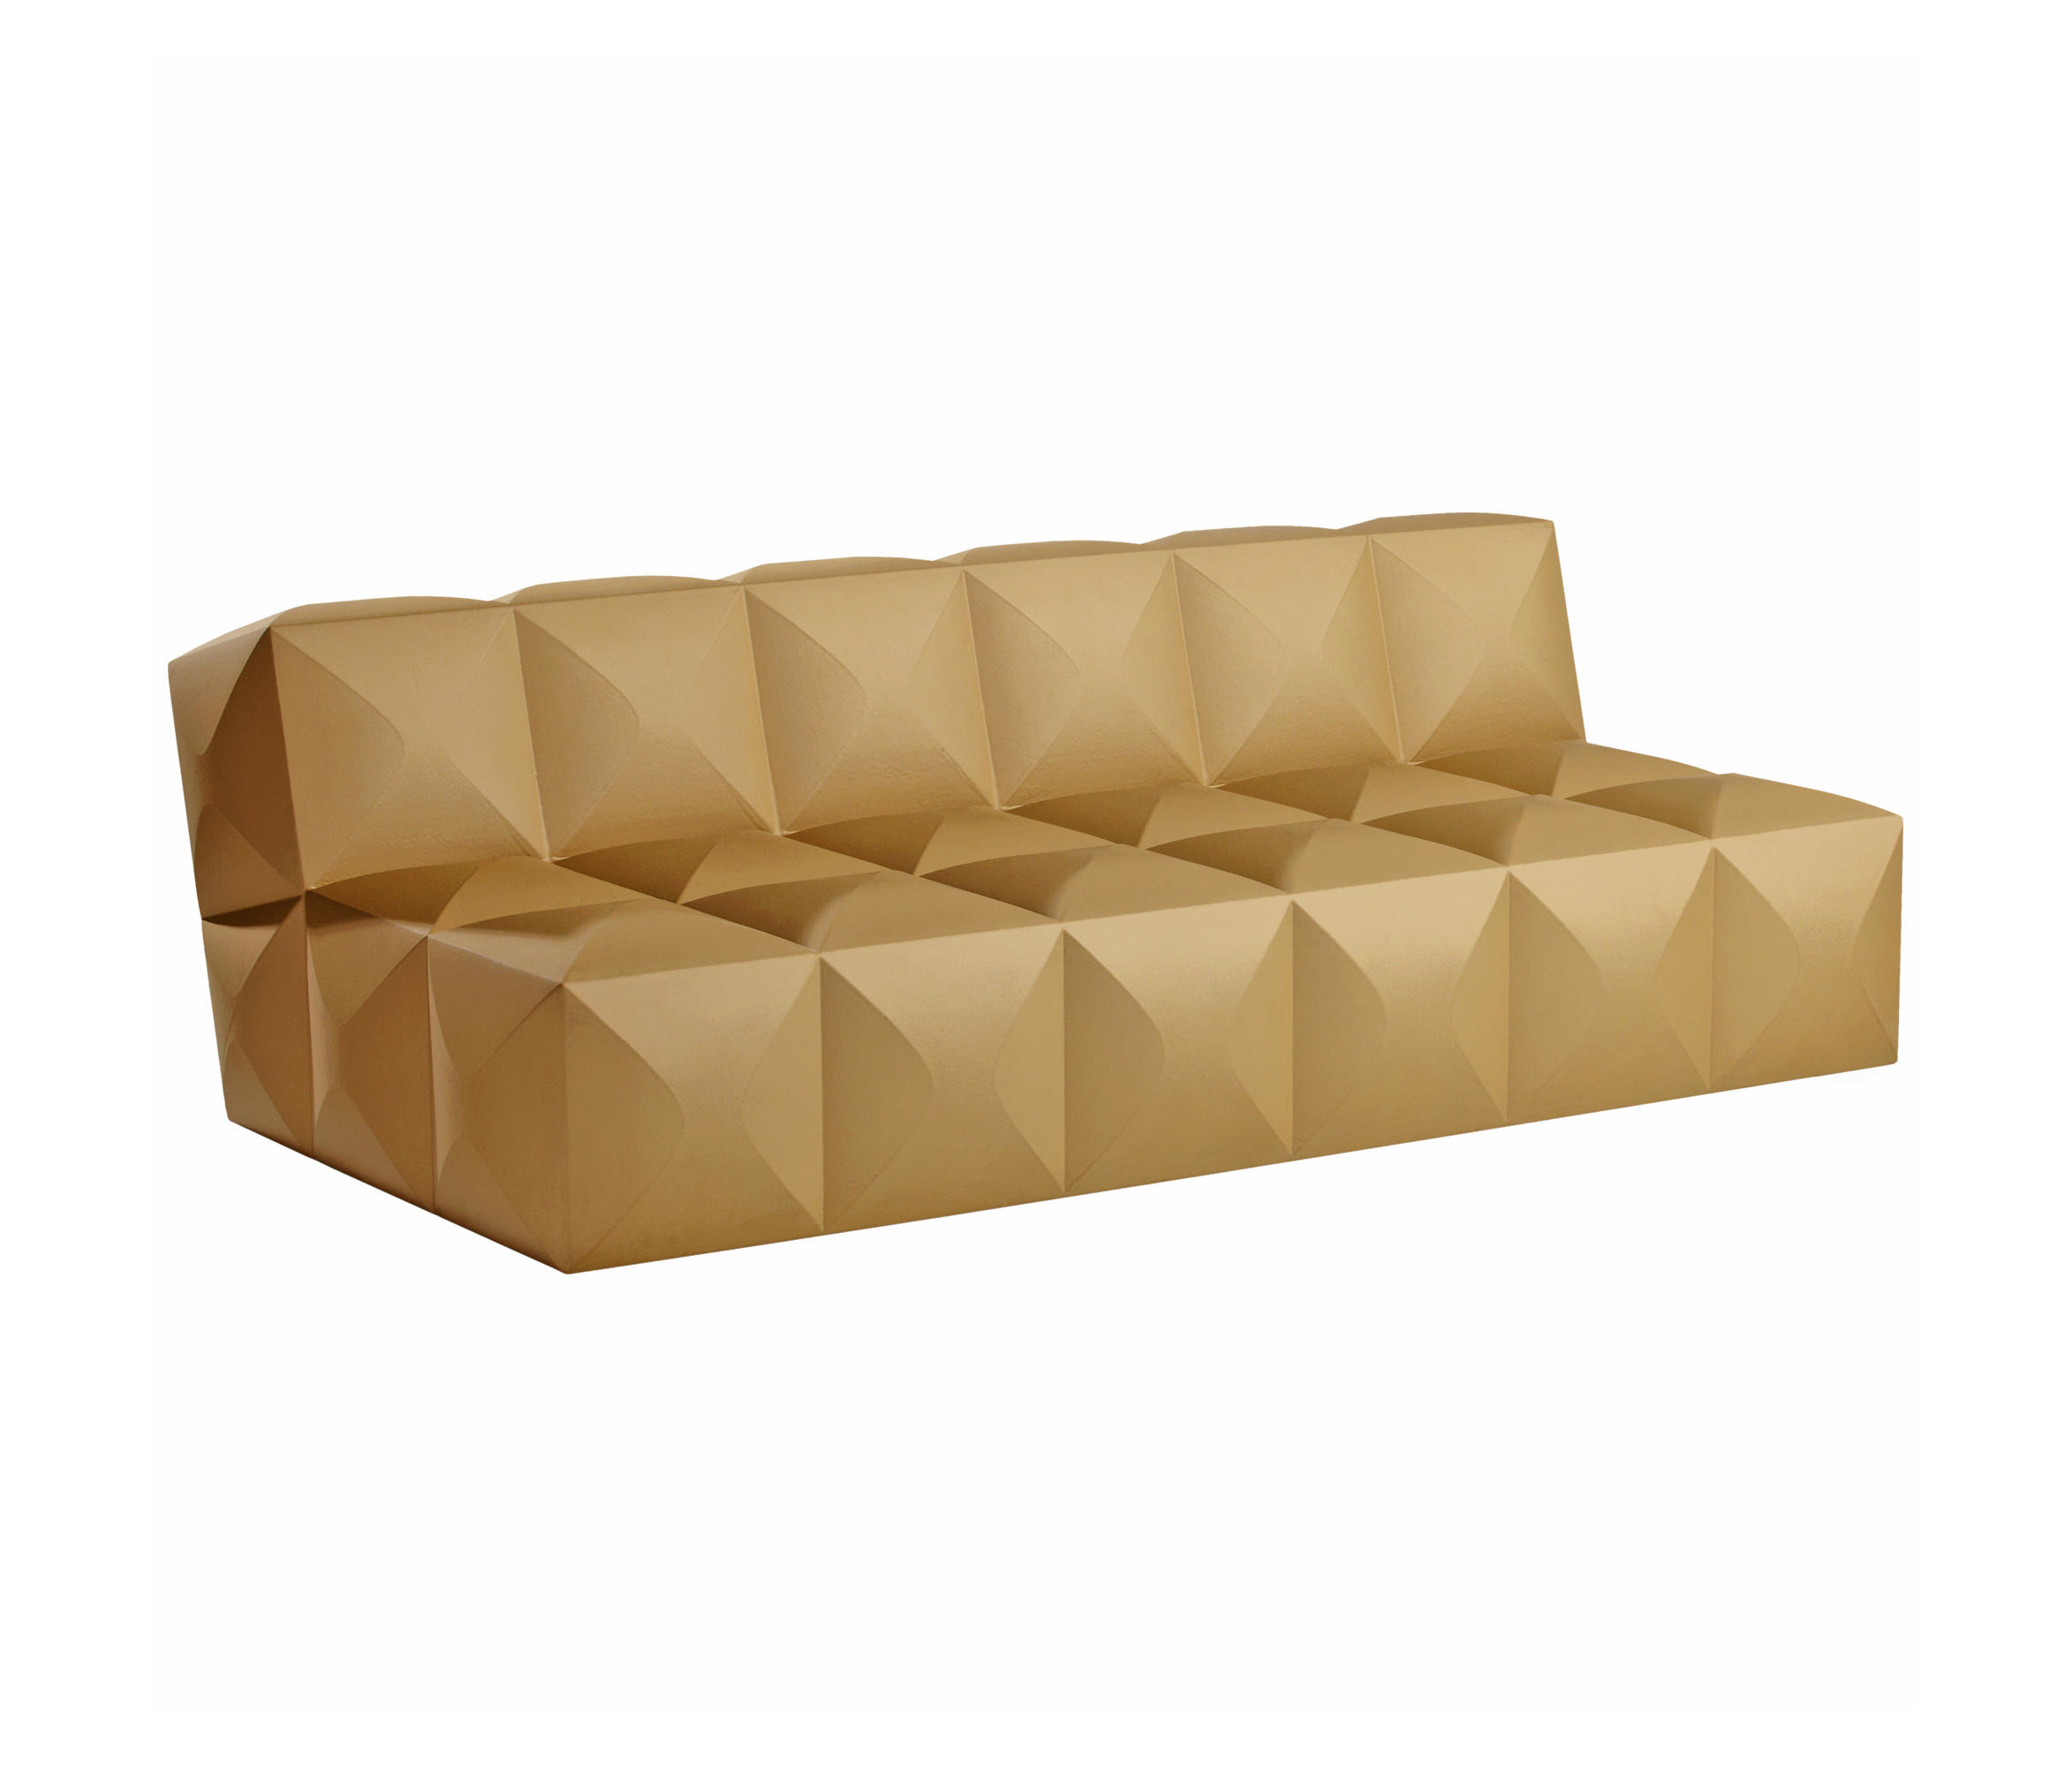 Bench sofa garden sofas from sixinch architonic Bench sofa